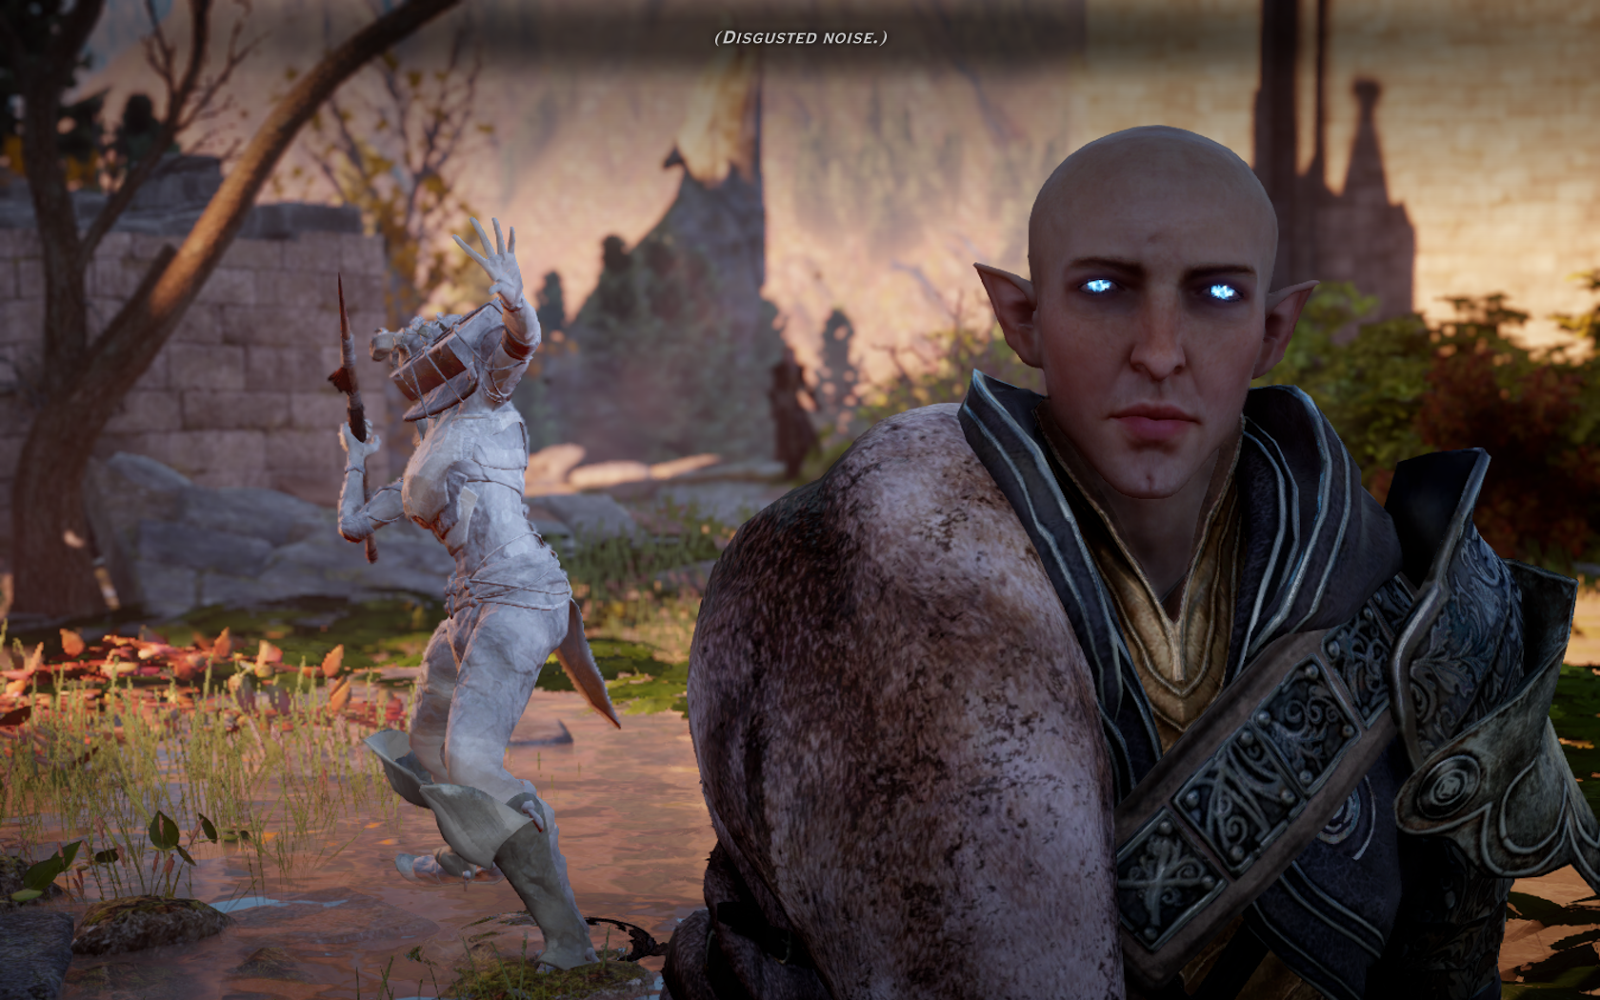 Dumped, Drunk and Dalish: The Real Hidden Question for